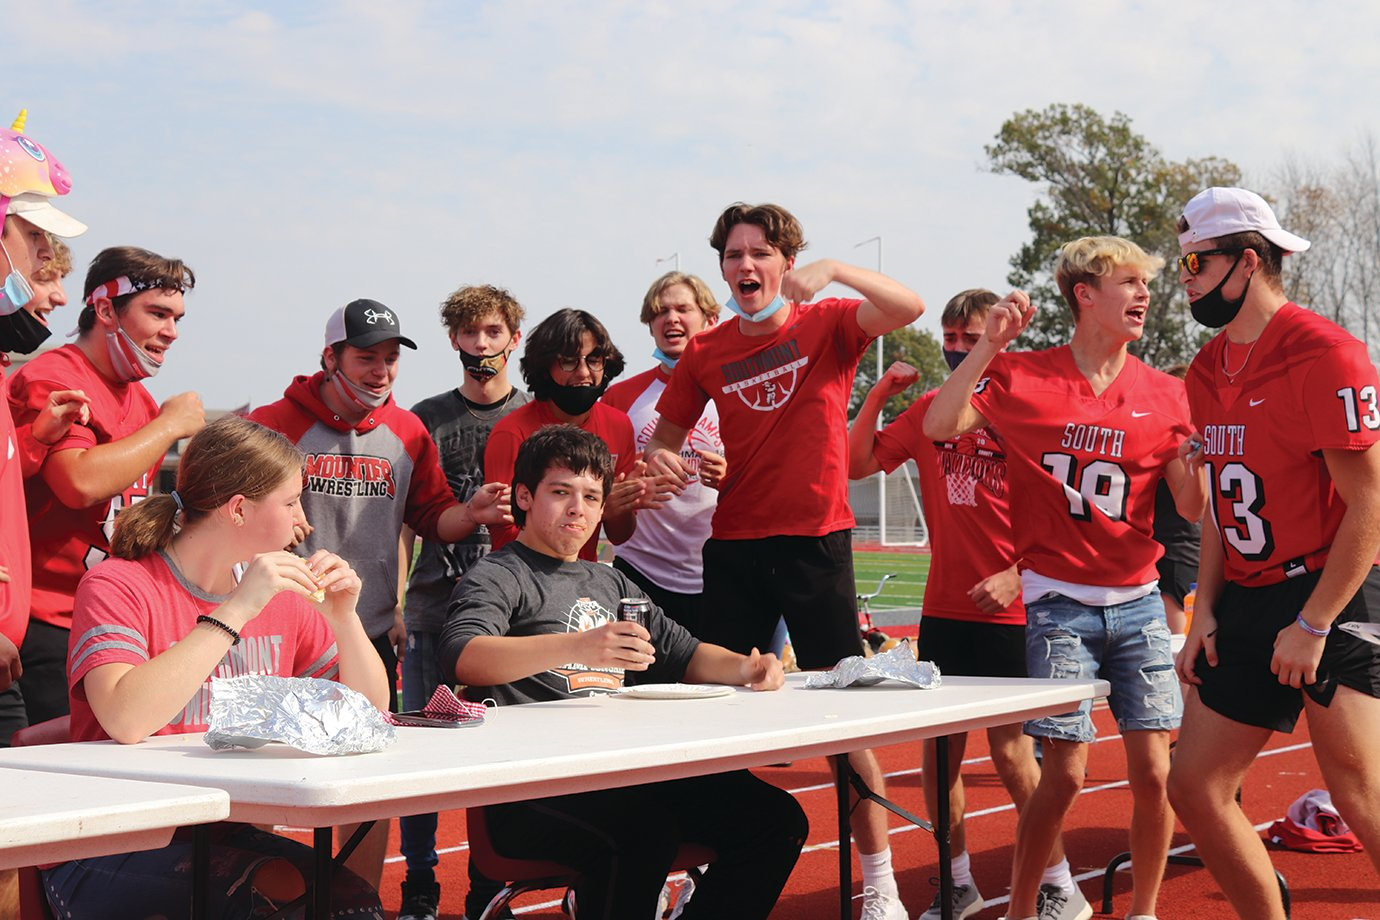 South senior Evan Francis, seated, eats his way to White Castle-eating contest champion.